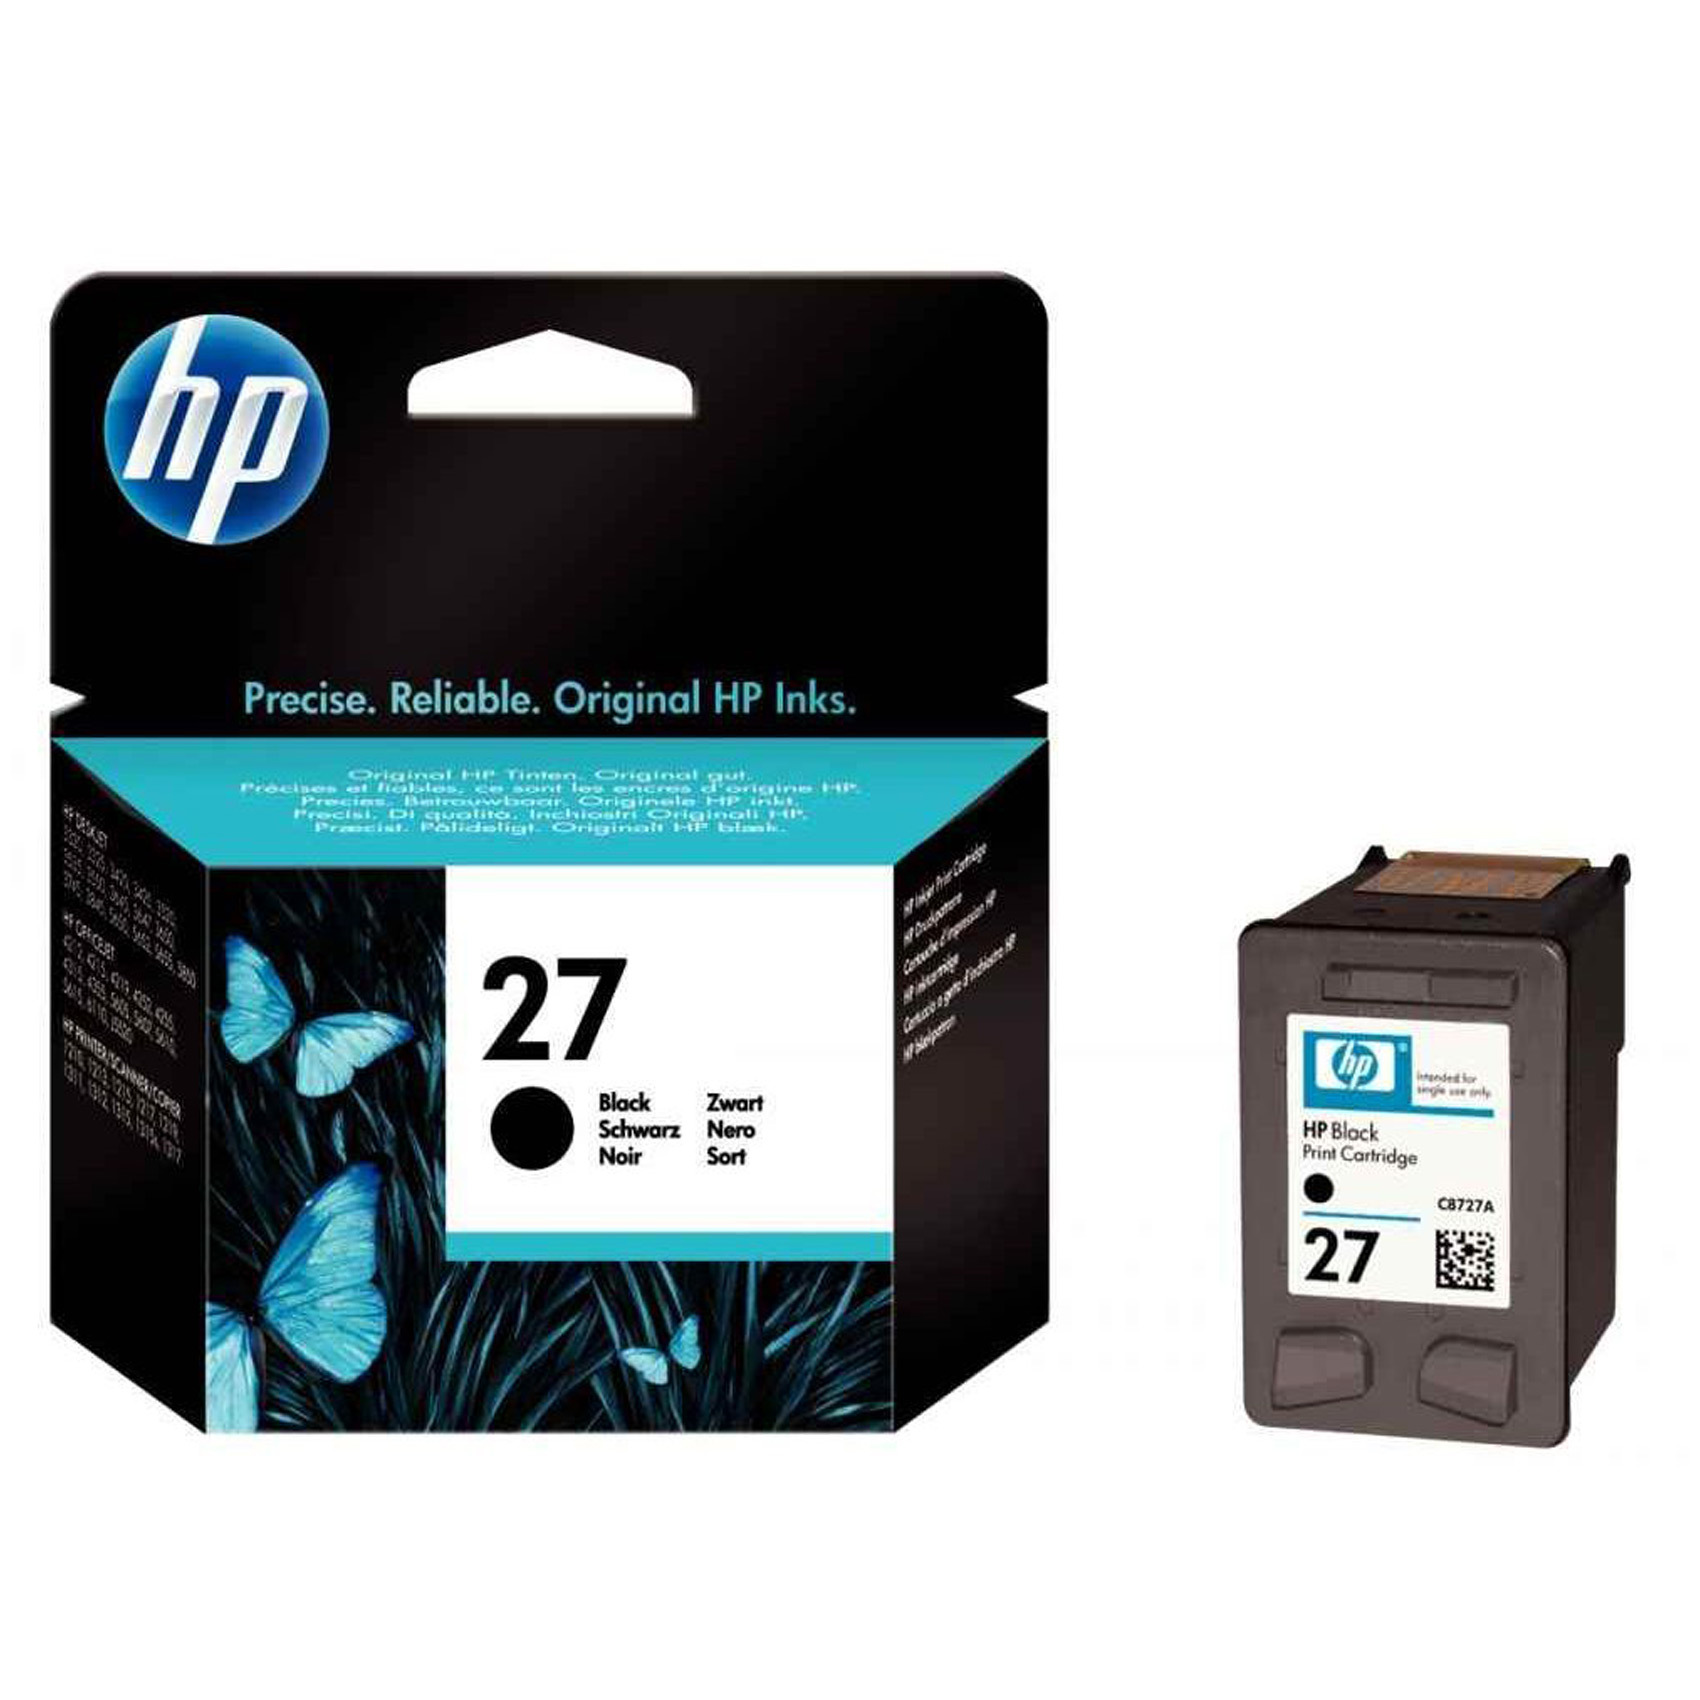 HP CART 27 BLACK INKJET